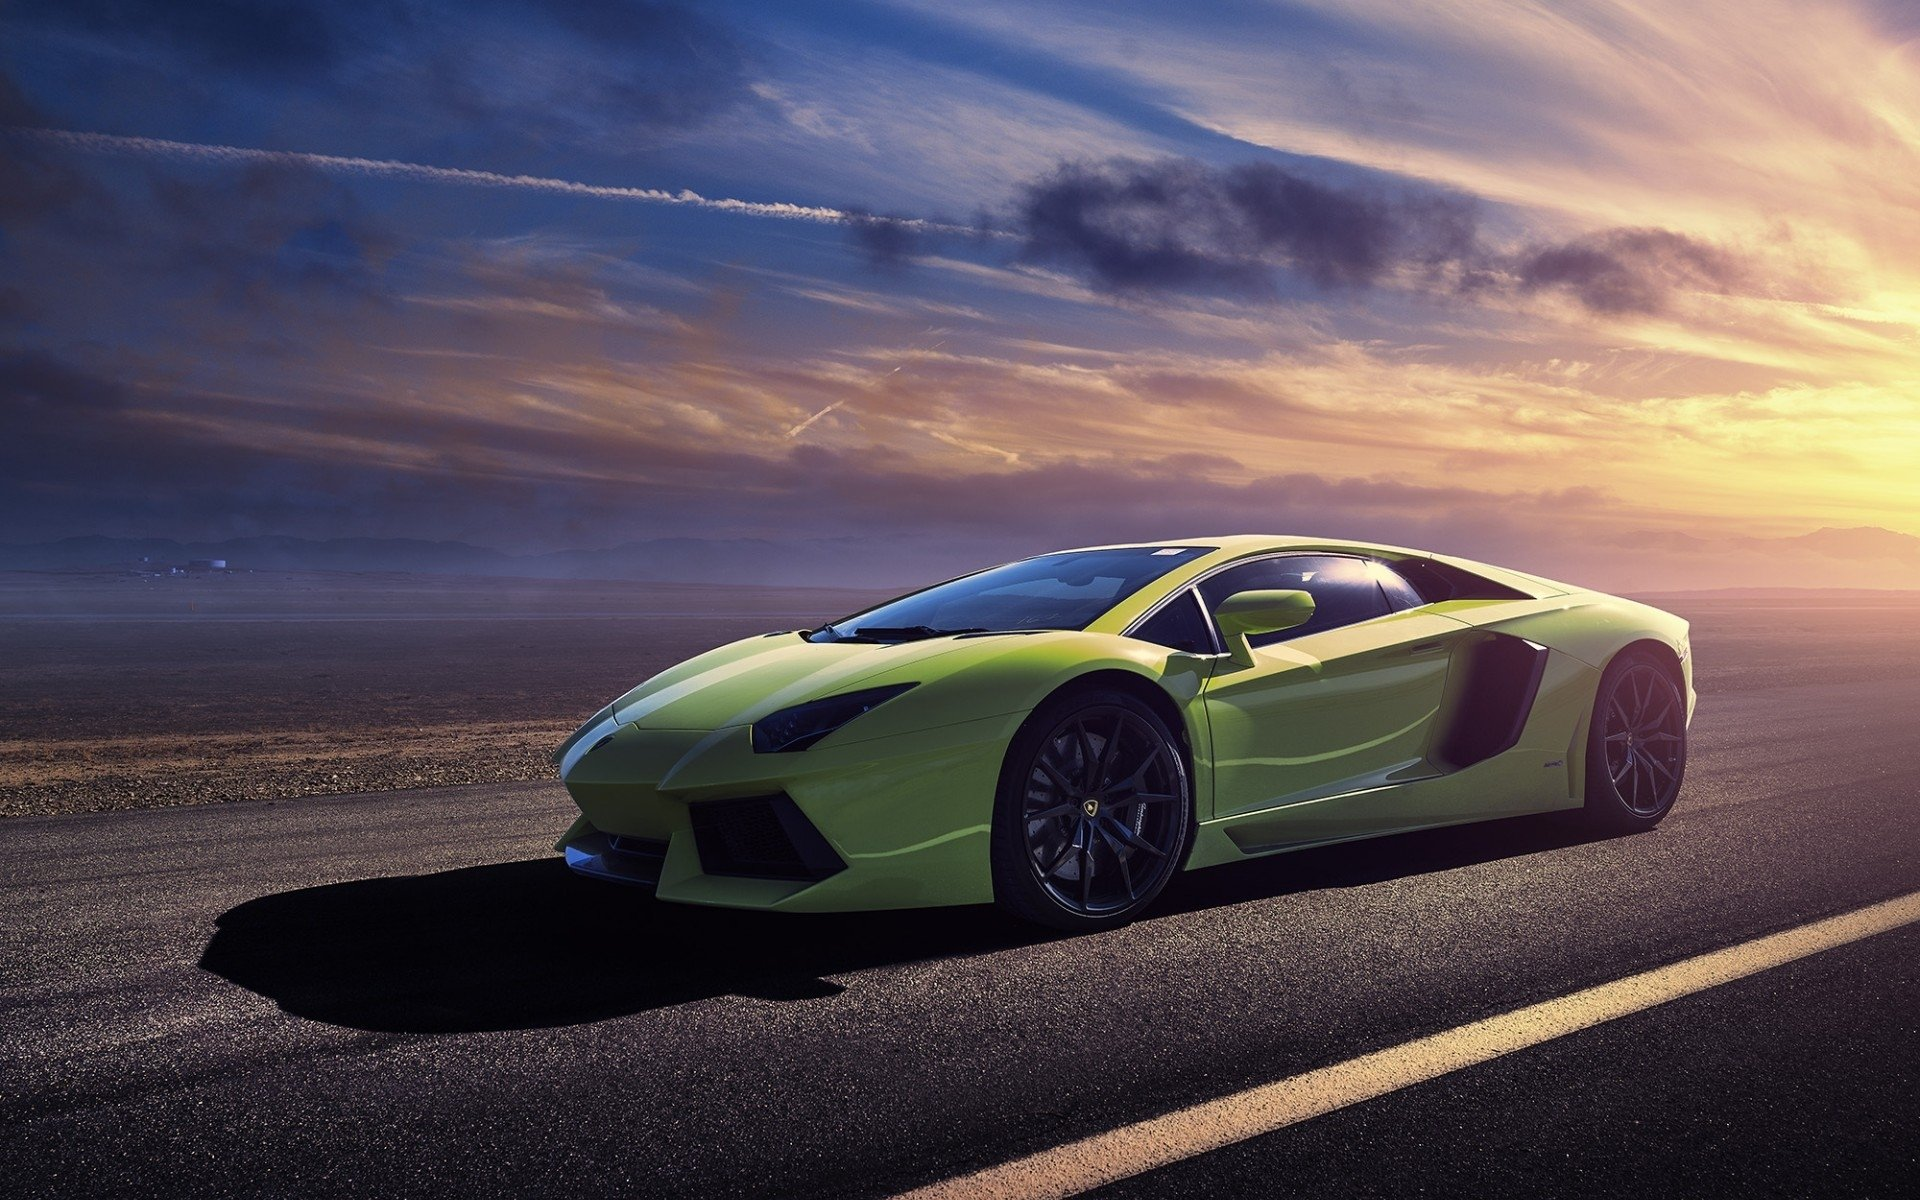 Vehicles - Lamborghini Aventador LP 700-4  Vehicle Car Green Car Supercar Lamborghini Lamborghini Aventador Lamborghini Aventador LP700-4 Wallpaper